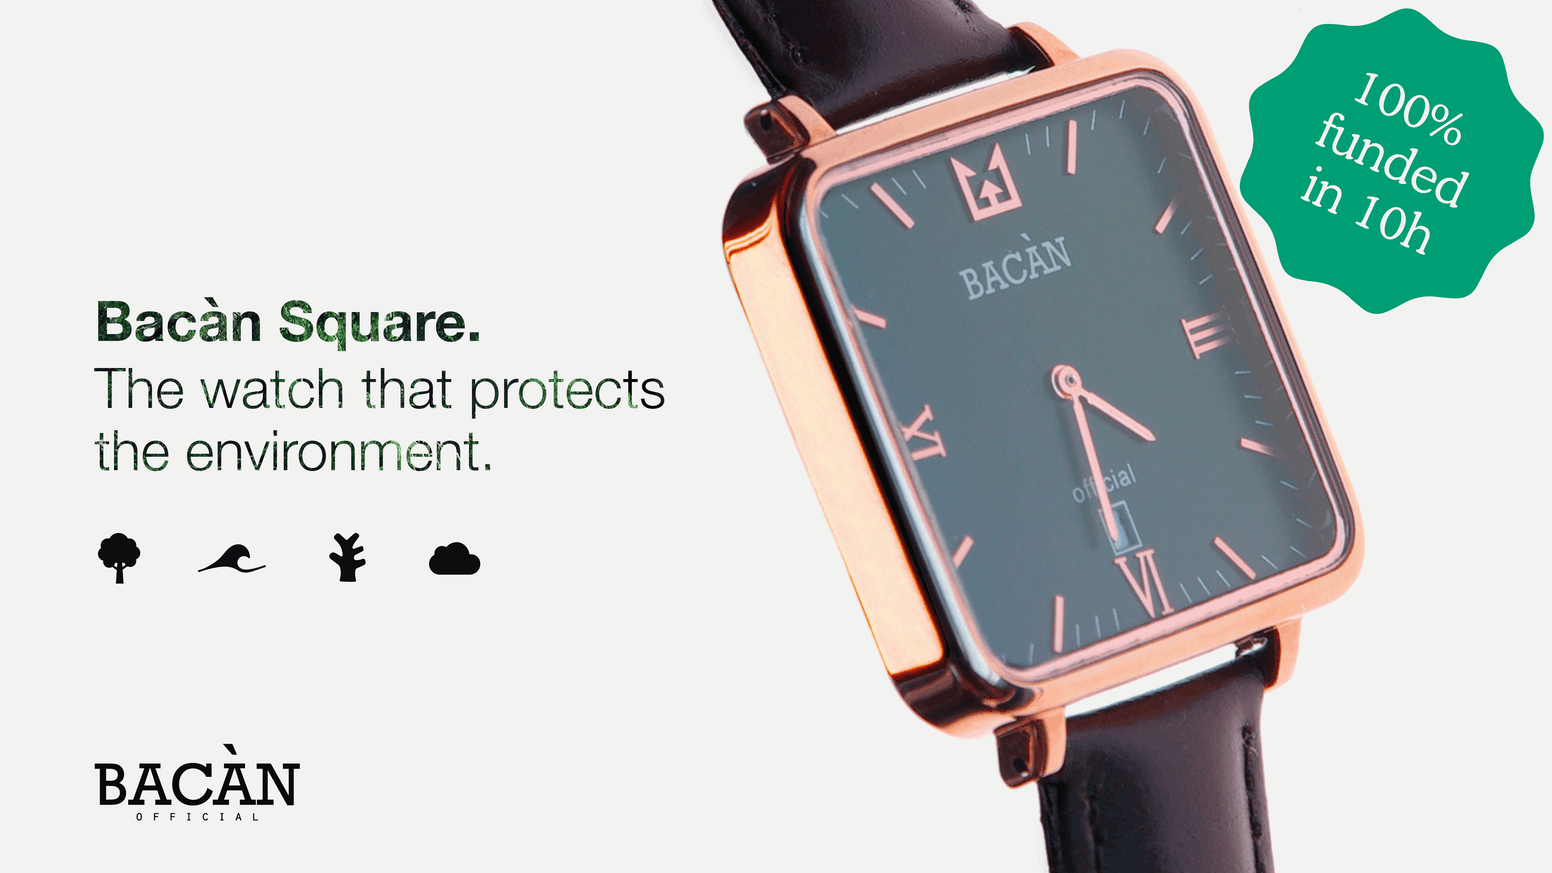 A watch that protects the planet, designed in Italy. Where care for details, affordability and sustainability play on the same ground.